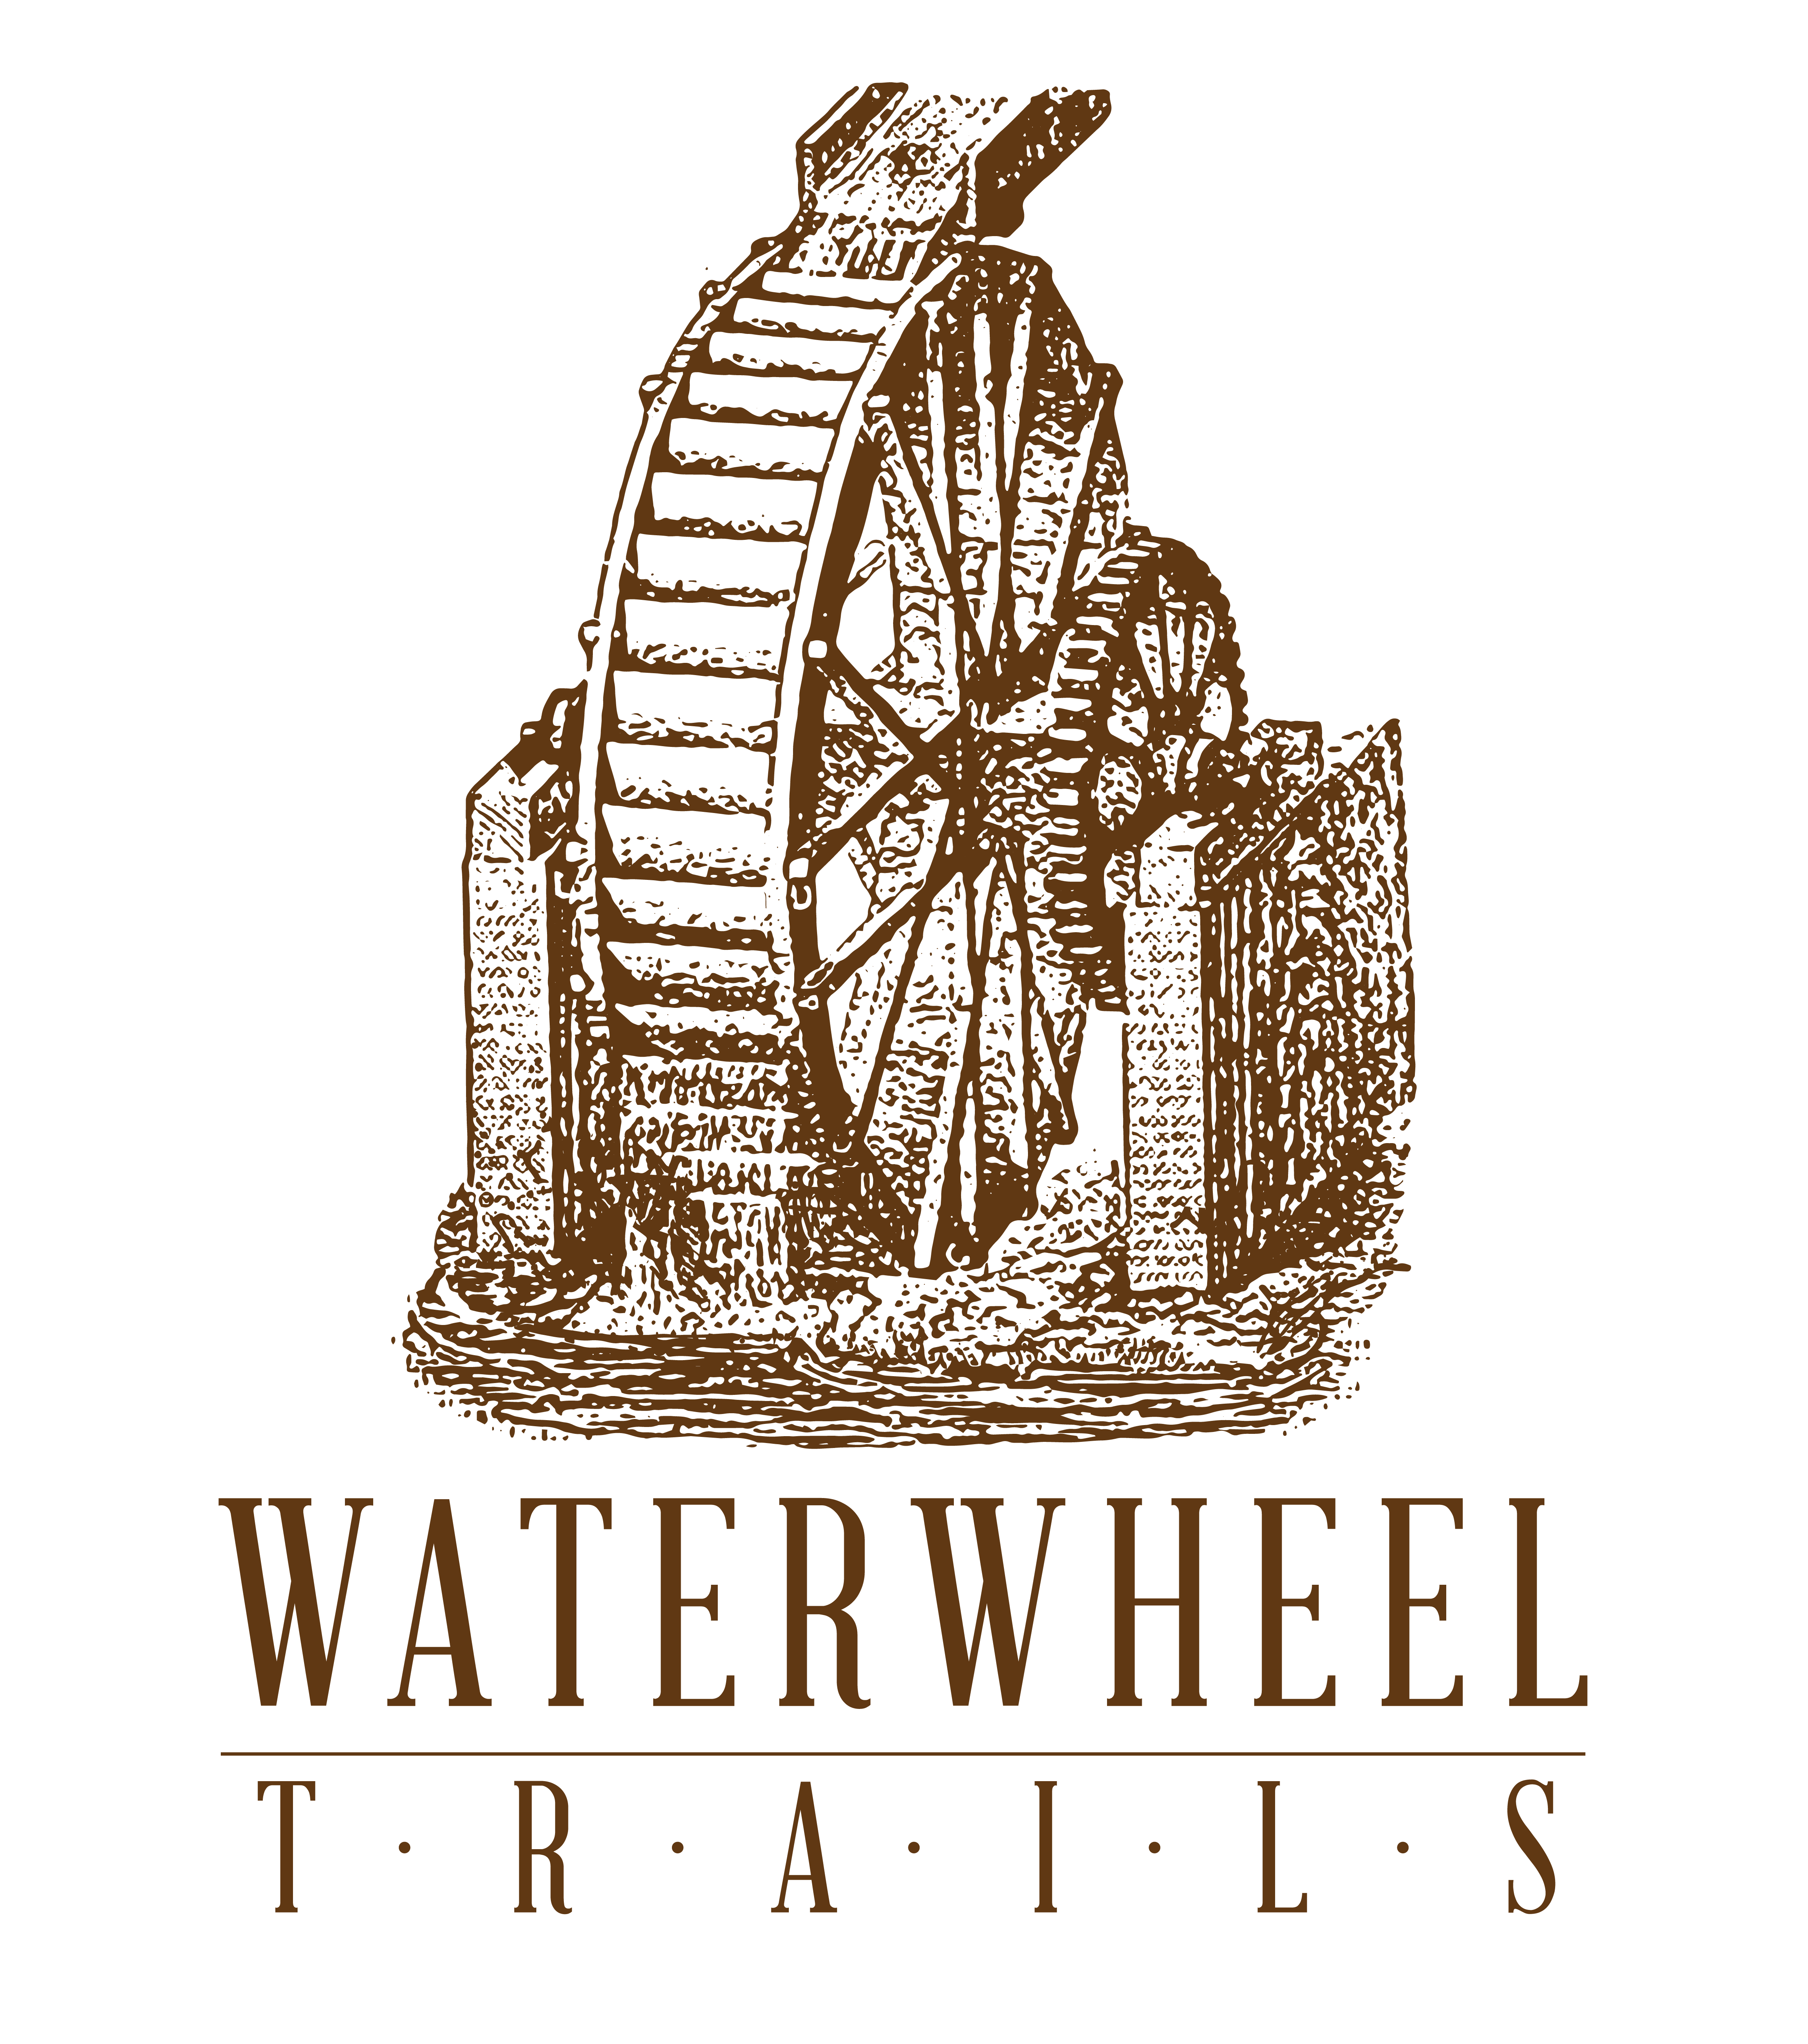 Wheel clipart wagon wheel. Welcome to water trails